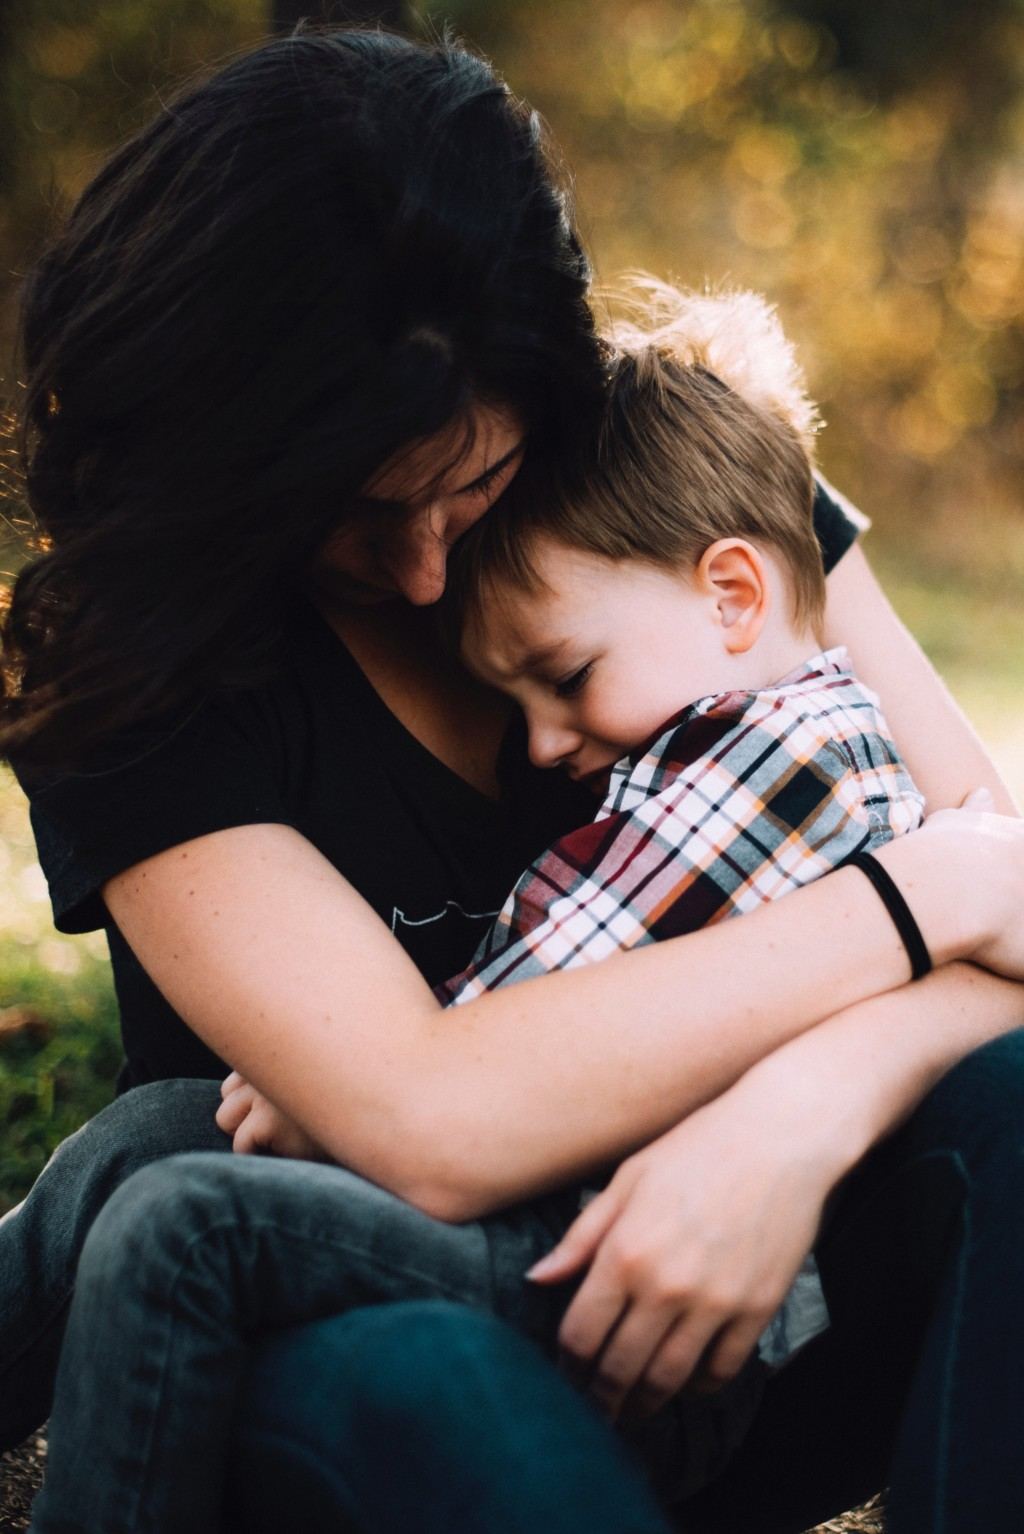 """jordan-whitt-145327-unsplash Autism: A Lesson in Love From a Mom and Her """"Special Son"""" Jackie Aviles Contributor Miami Moms Blog"""